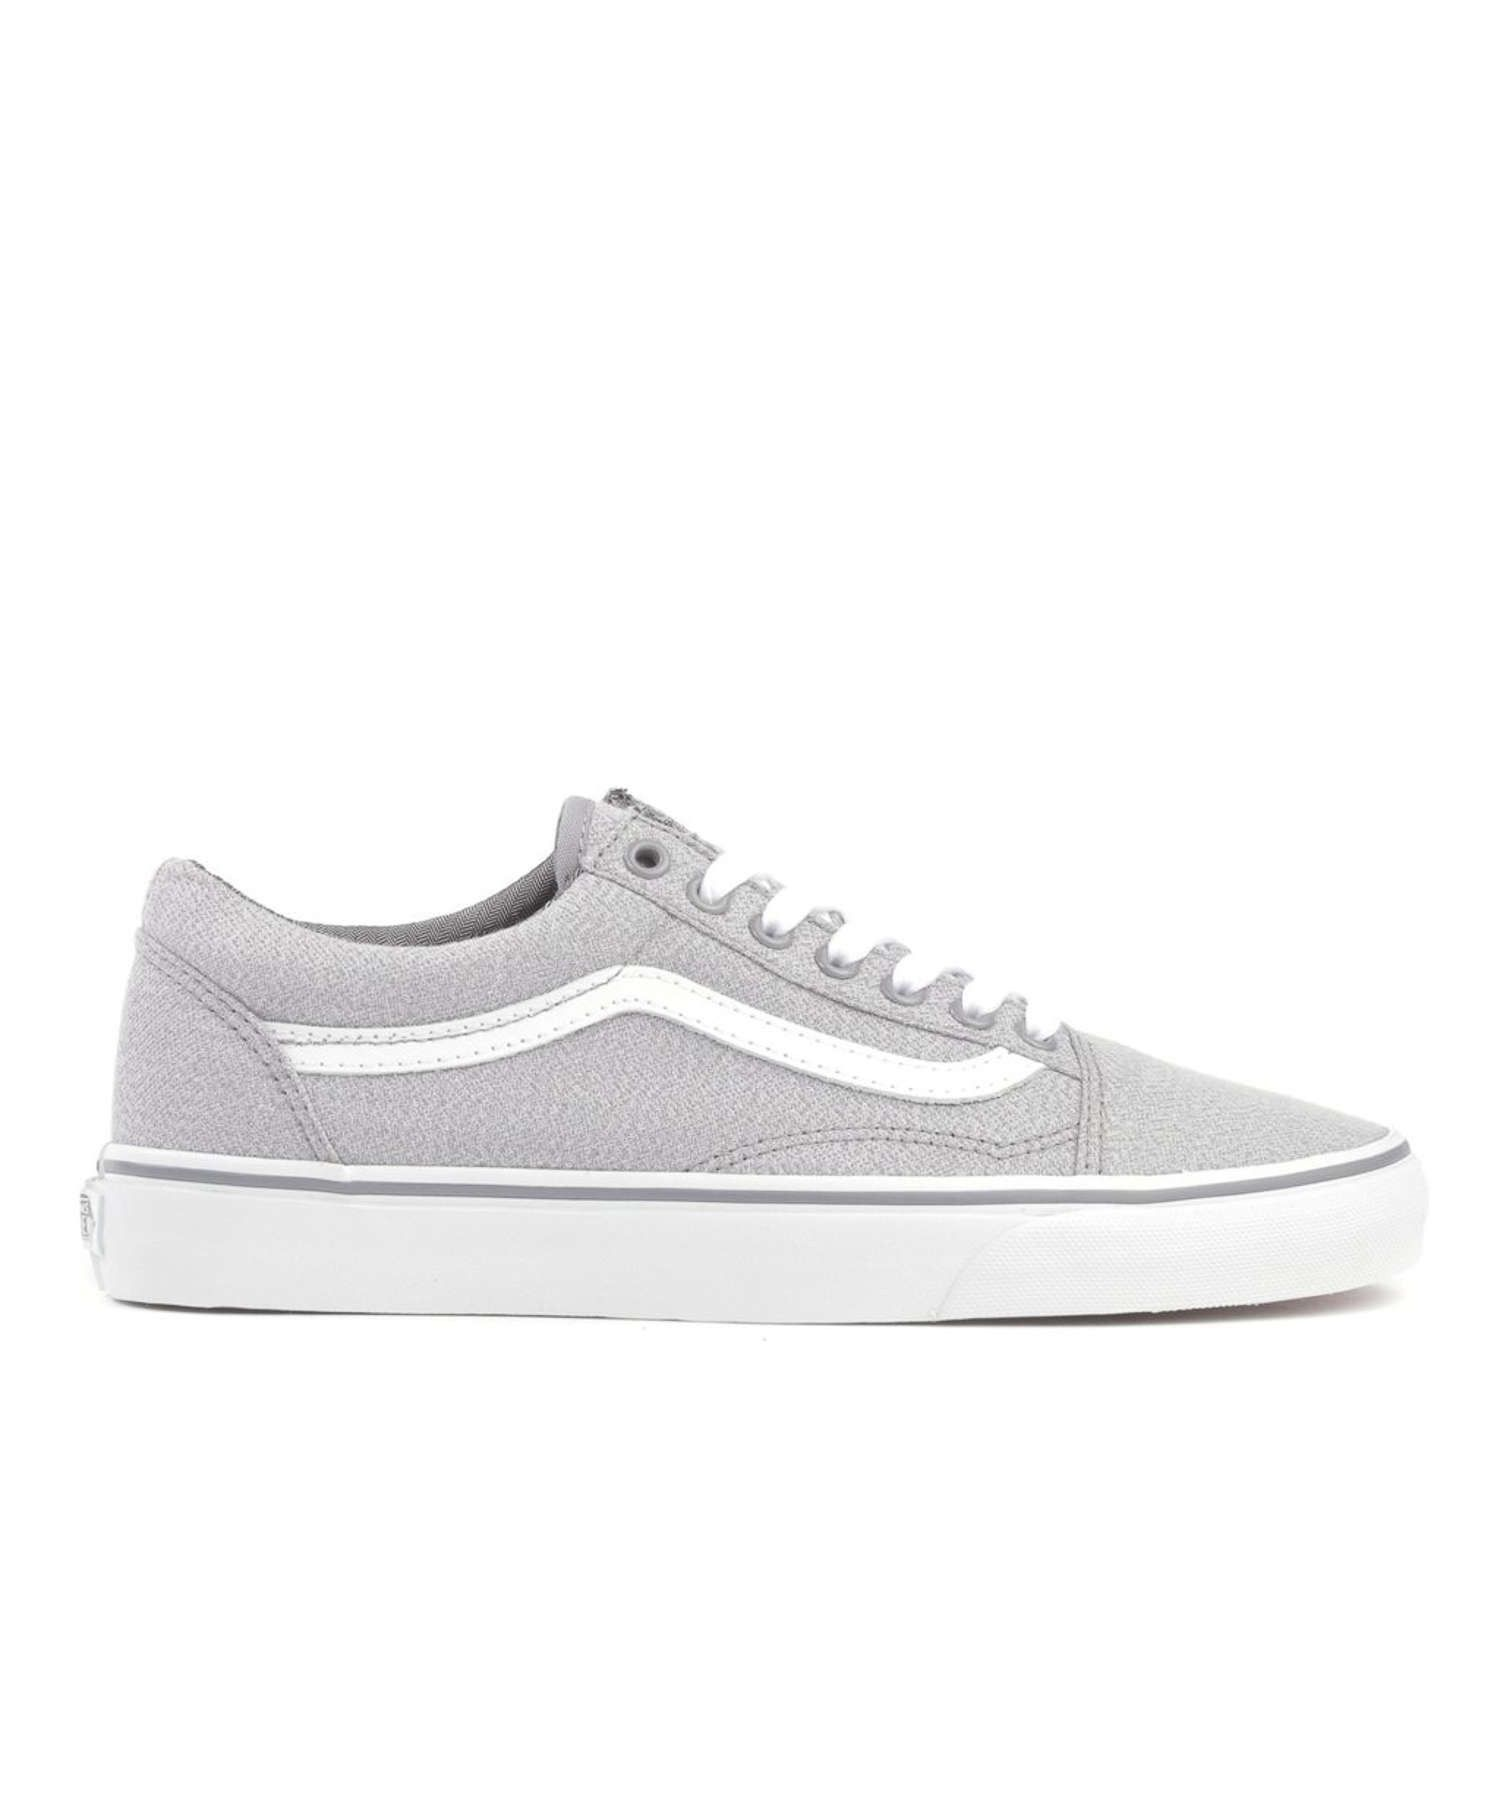 Vans Old Skool Suiting Fabric in Frost Grey  47b7e0514